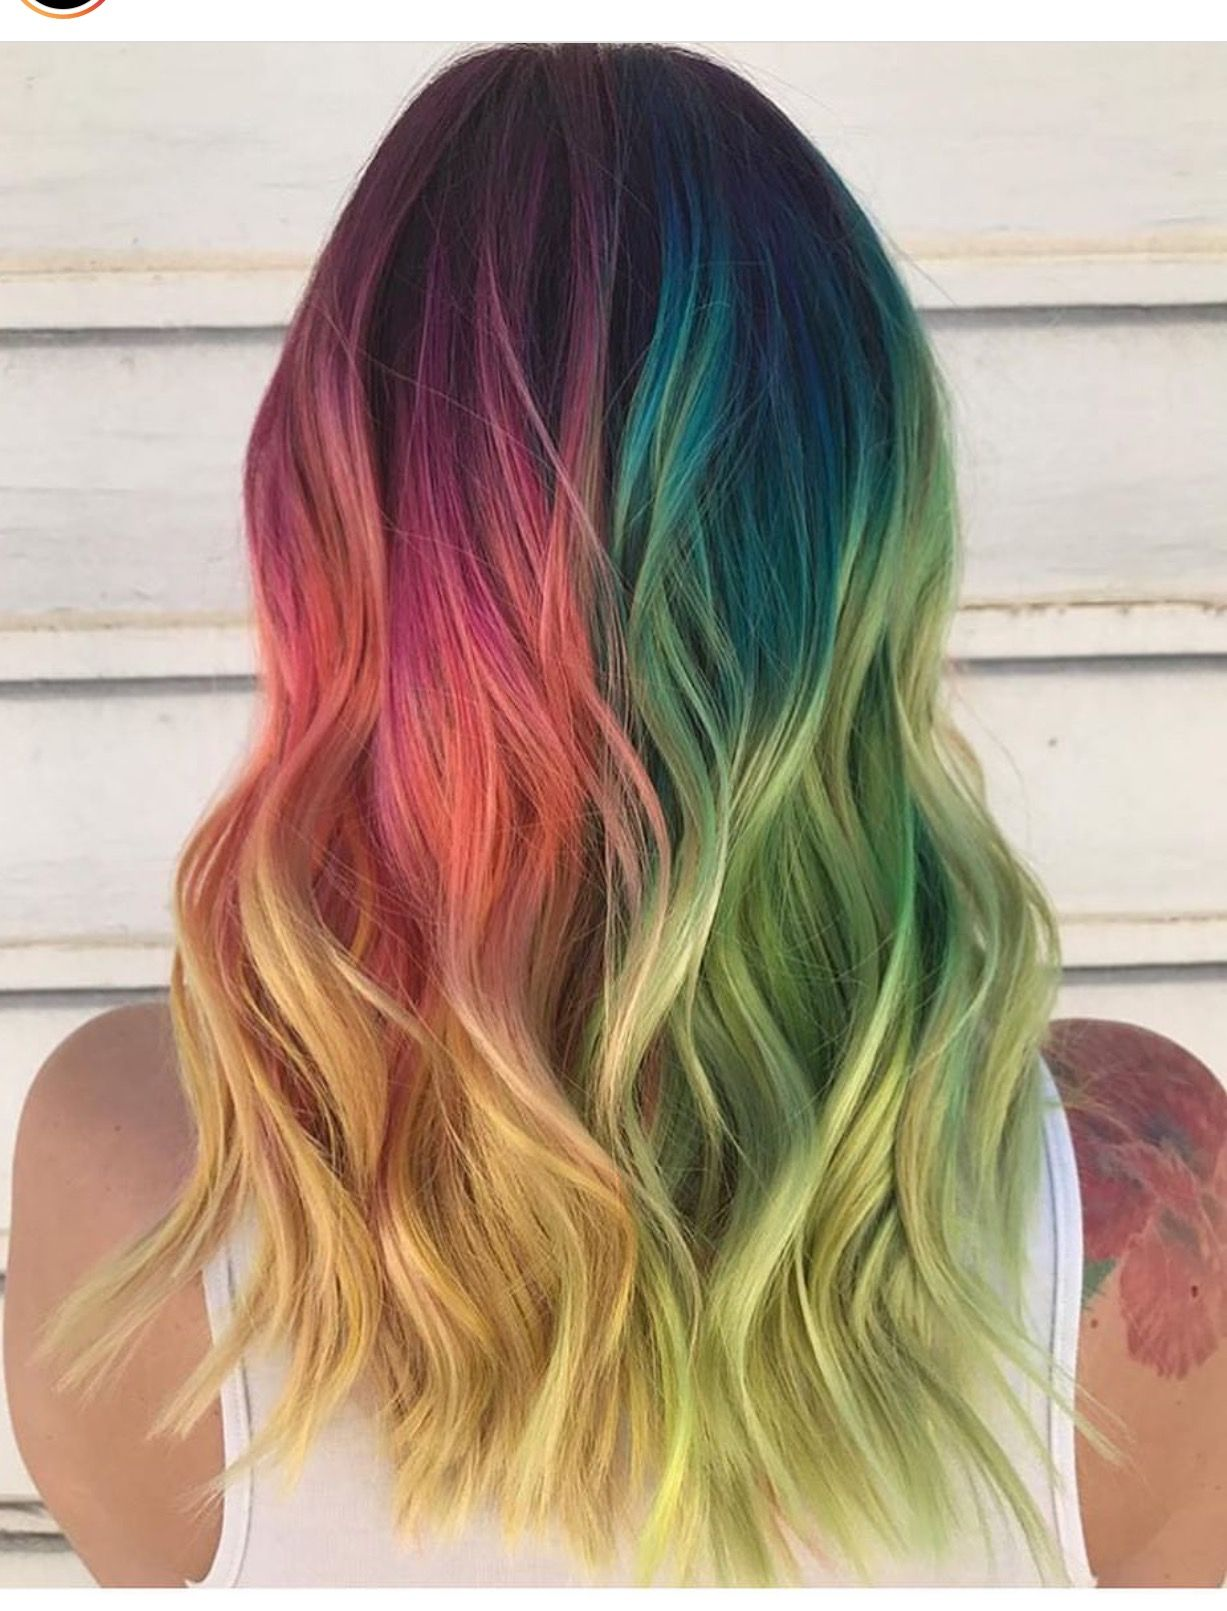 Pin by Kelsey Unrath on Crazy Cool Hair  Pinterest  Hair coloring